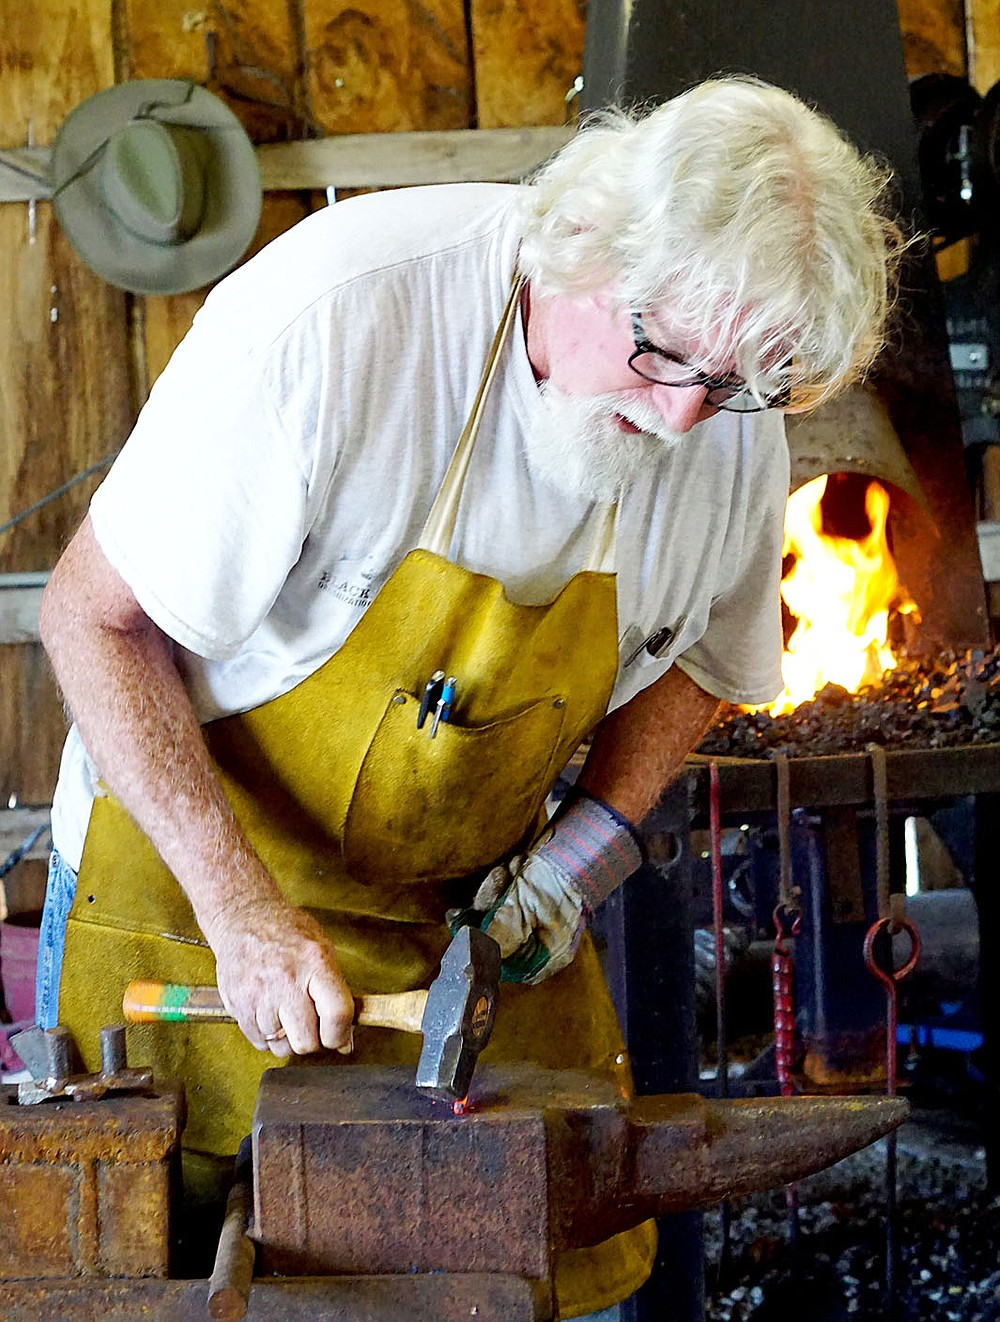 Westside Eagle Observer/RANDY MOLL Steve Low, of Gentry, bends a piece of hot iron on Friday, Sept. 6, 2019, to make a handle for a utensil he is building. Low was working at a forge and anvil in the blacksmith shop at the Tired Iron of the Ozarks showgrounds in Gentry during the fall show.